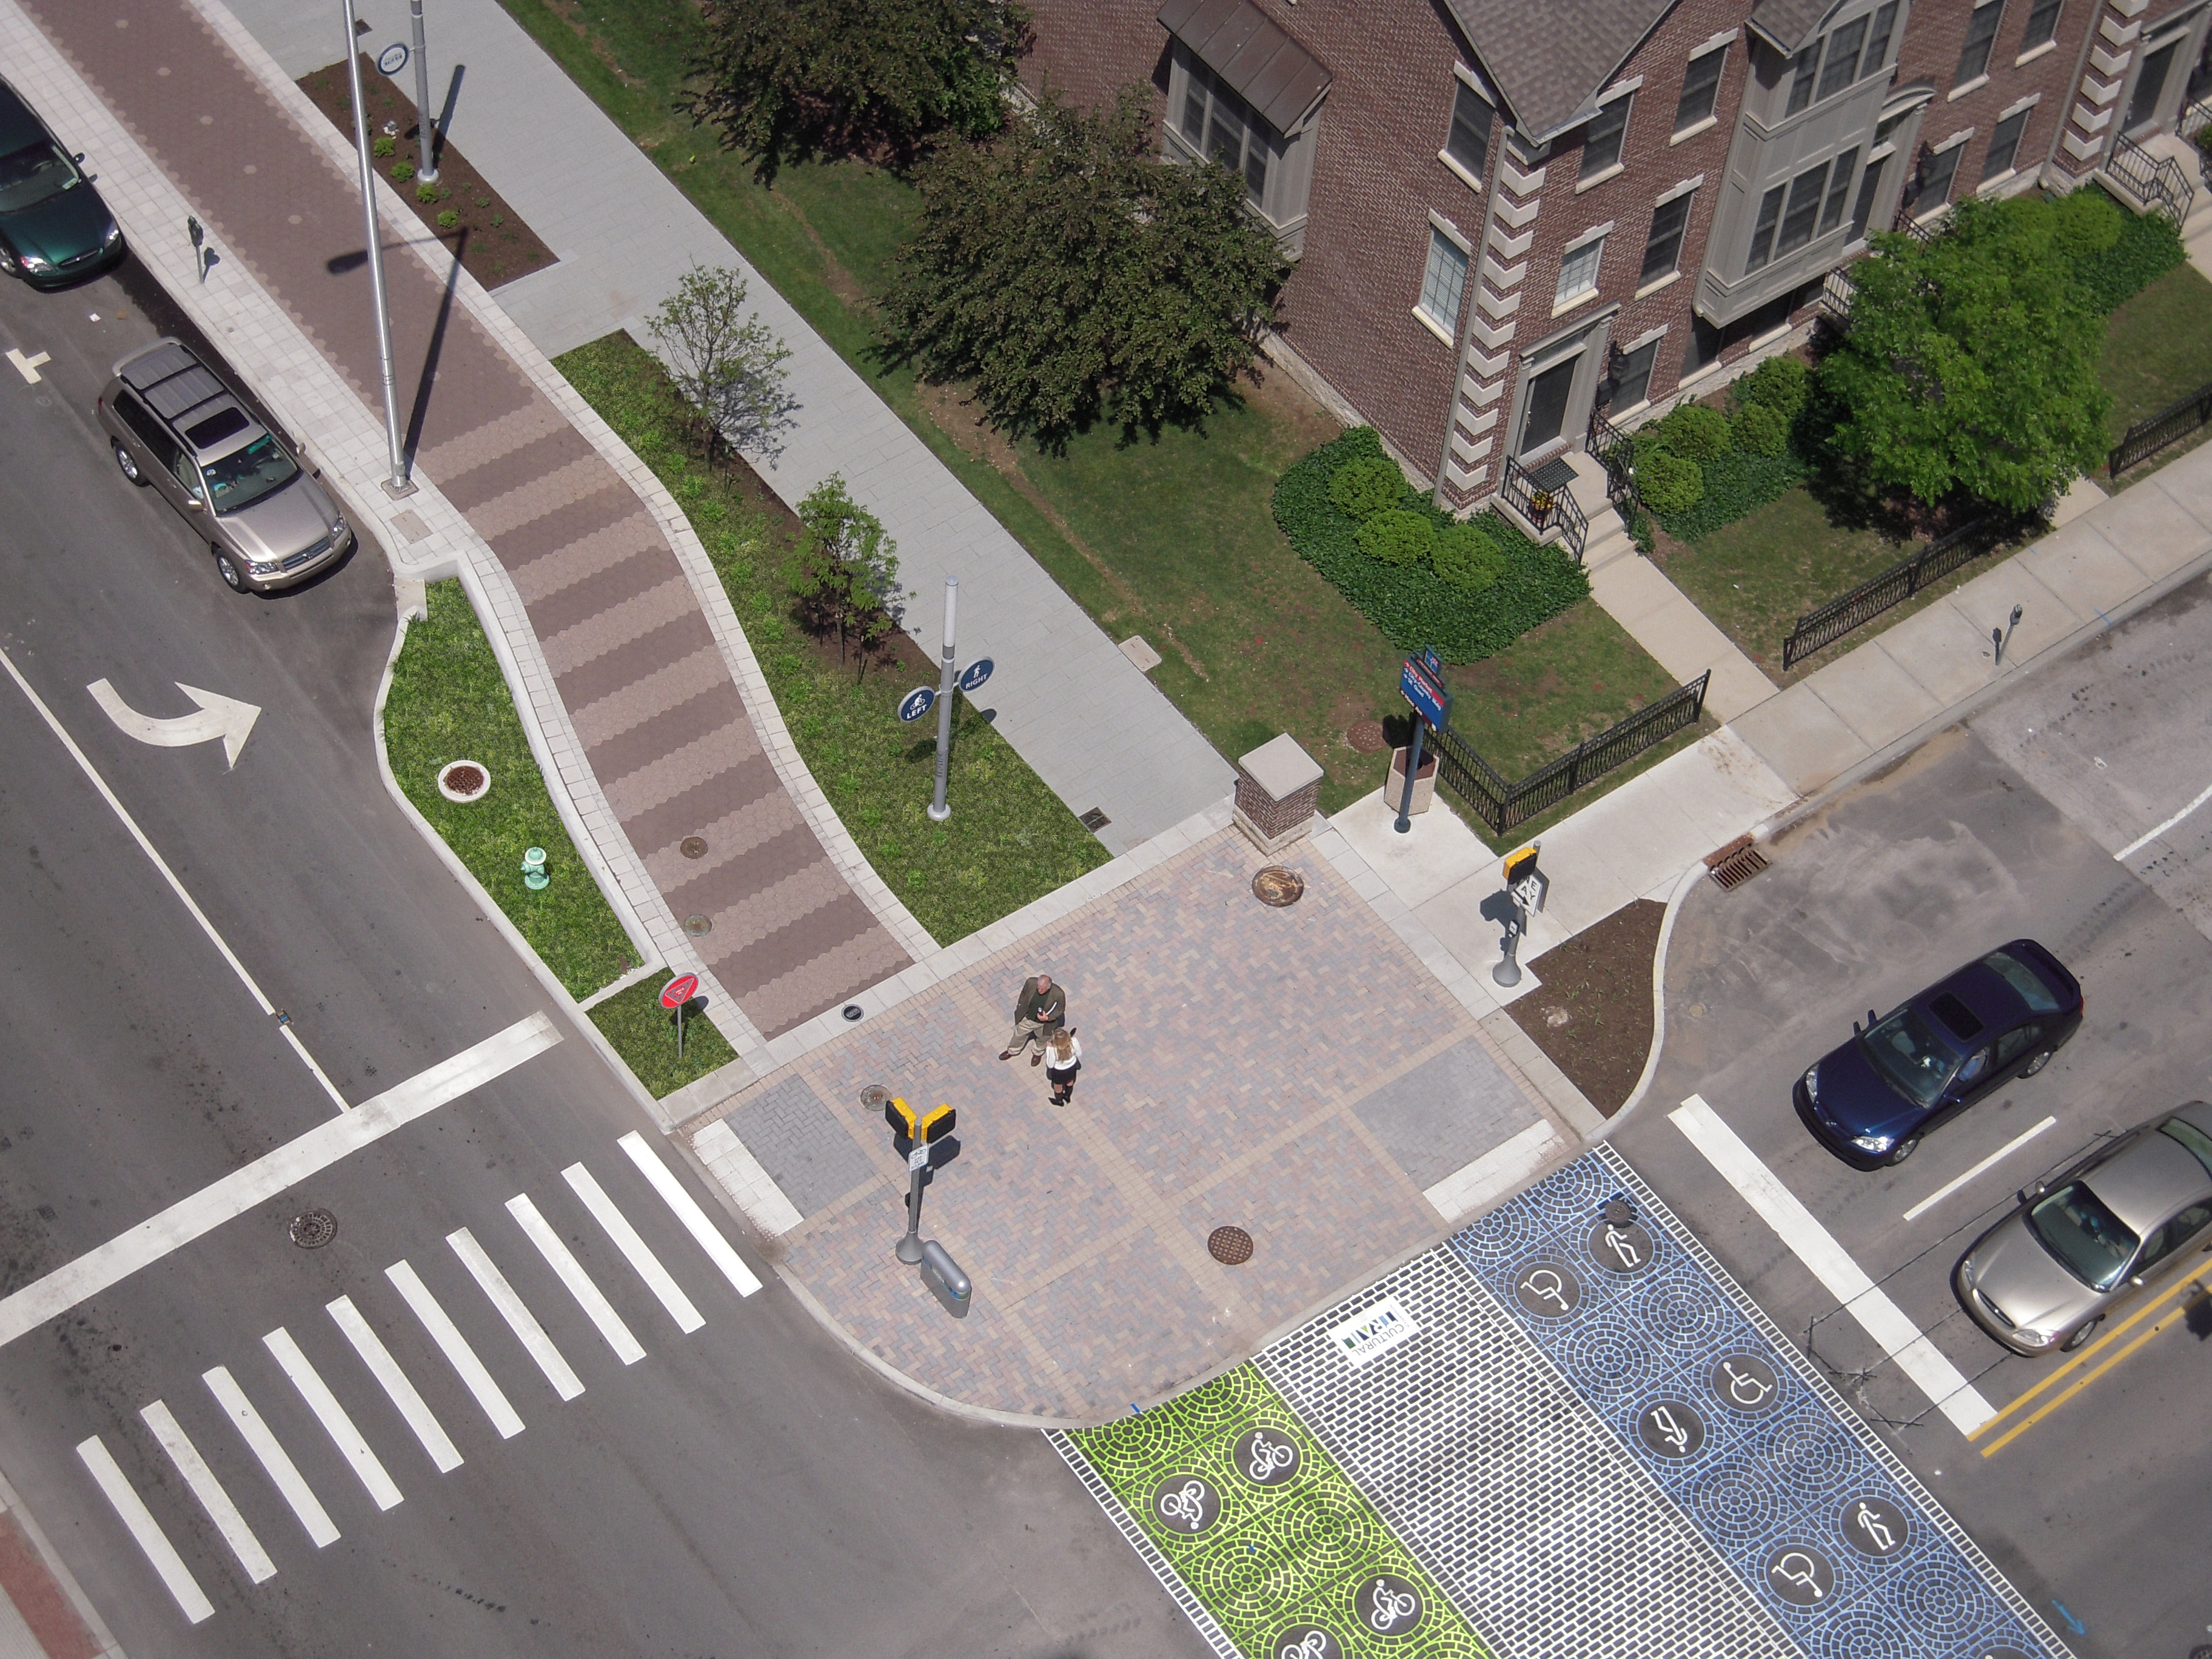 The design team bumped out the curbs to reduce crossing distances and used special pavement markings in the crosswalk.